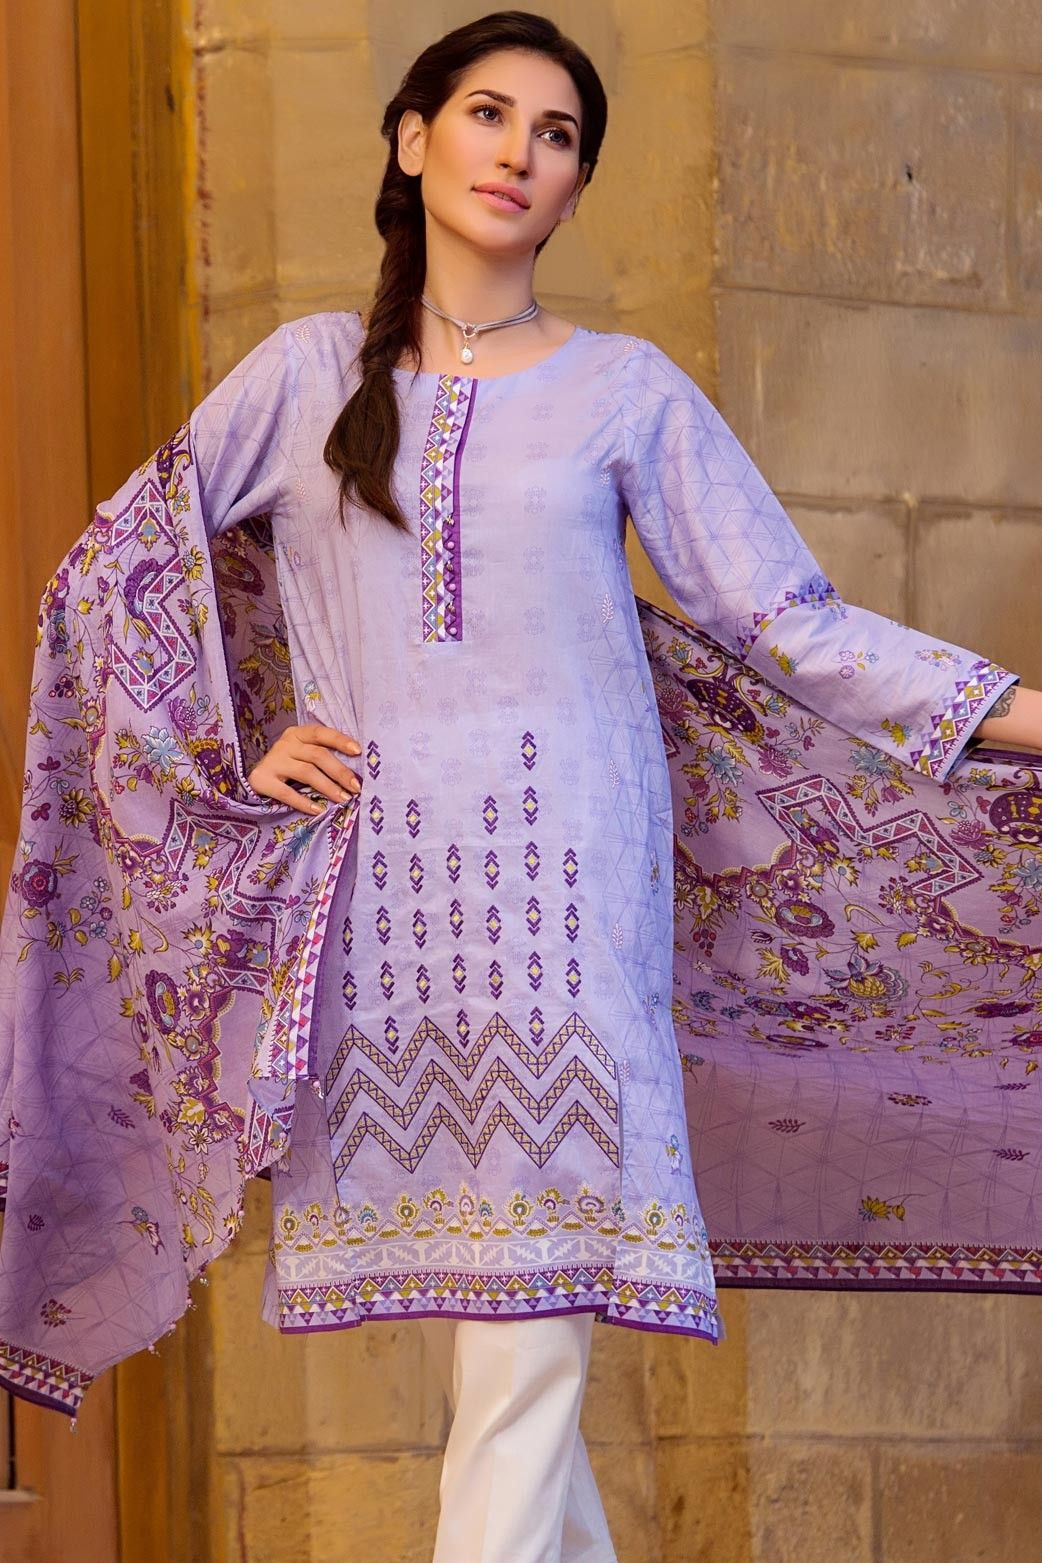 7fbf2ae59b Buy online Zeen Cambridge 3 piece Ready to Wear Pret Wear 'Dutch Cottage'  Violet Lawn Pakistani Dress Eid Collection 2017 #wintercollection  #blackfriday ...